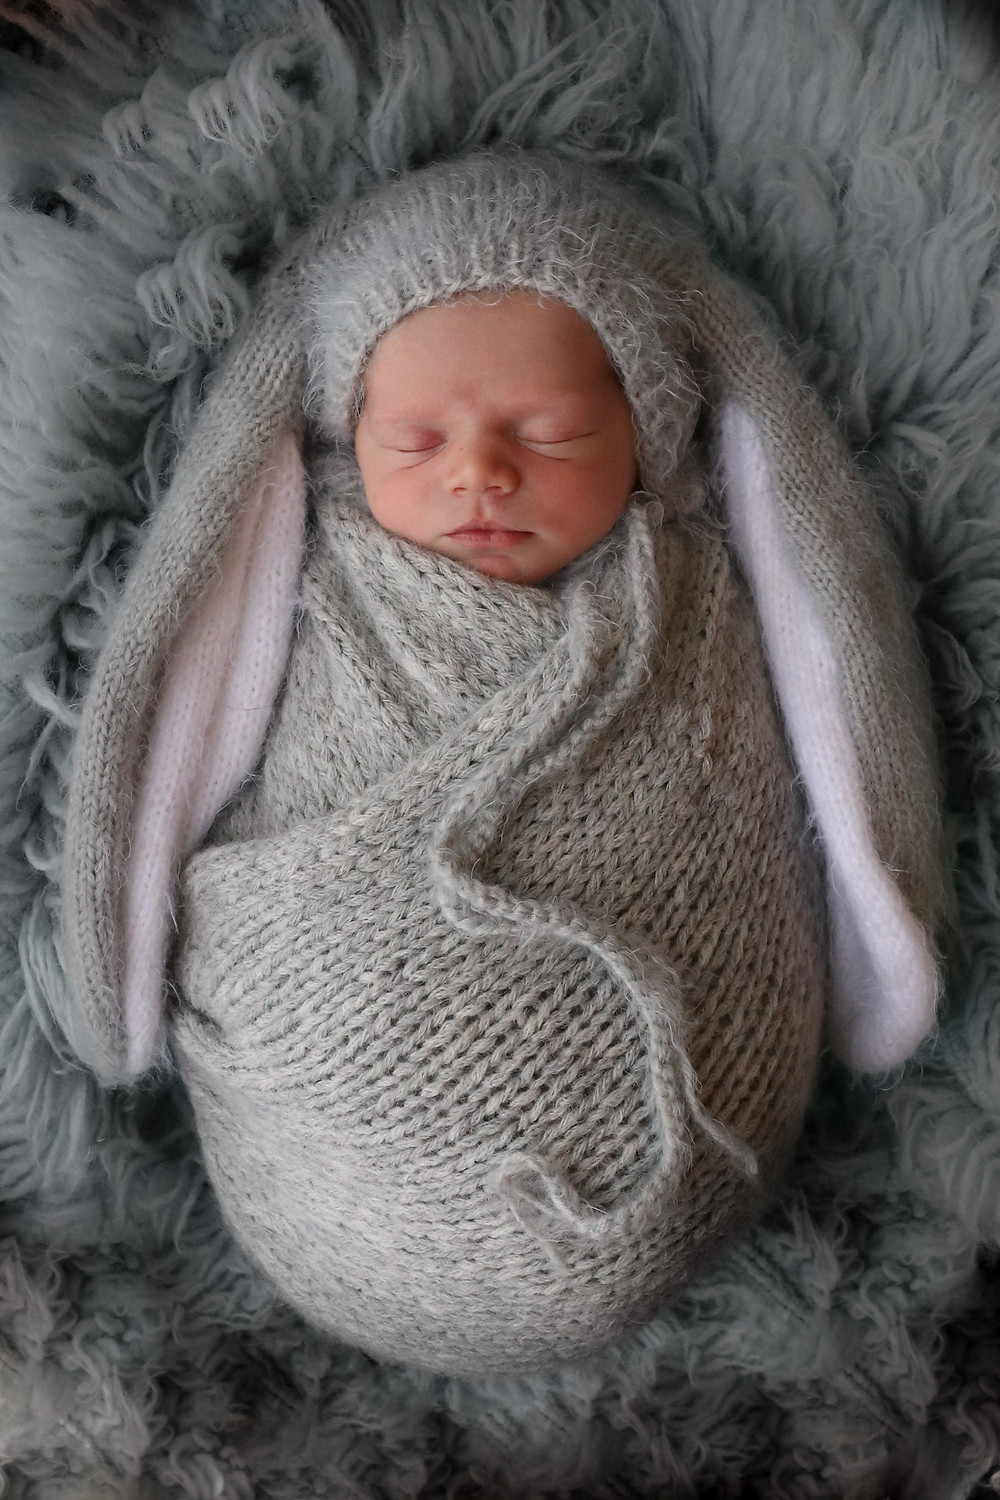 cute baby boy fast asleep, wearing a grey knitted bunny bonnet with long ears and matching grey knitted wrap